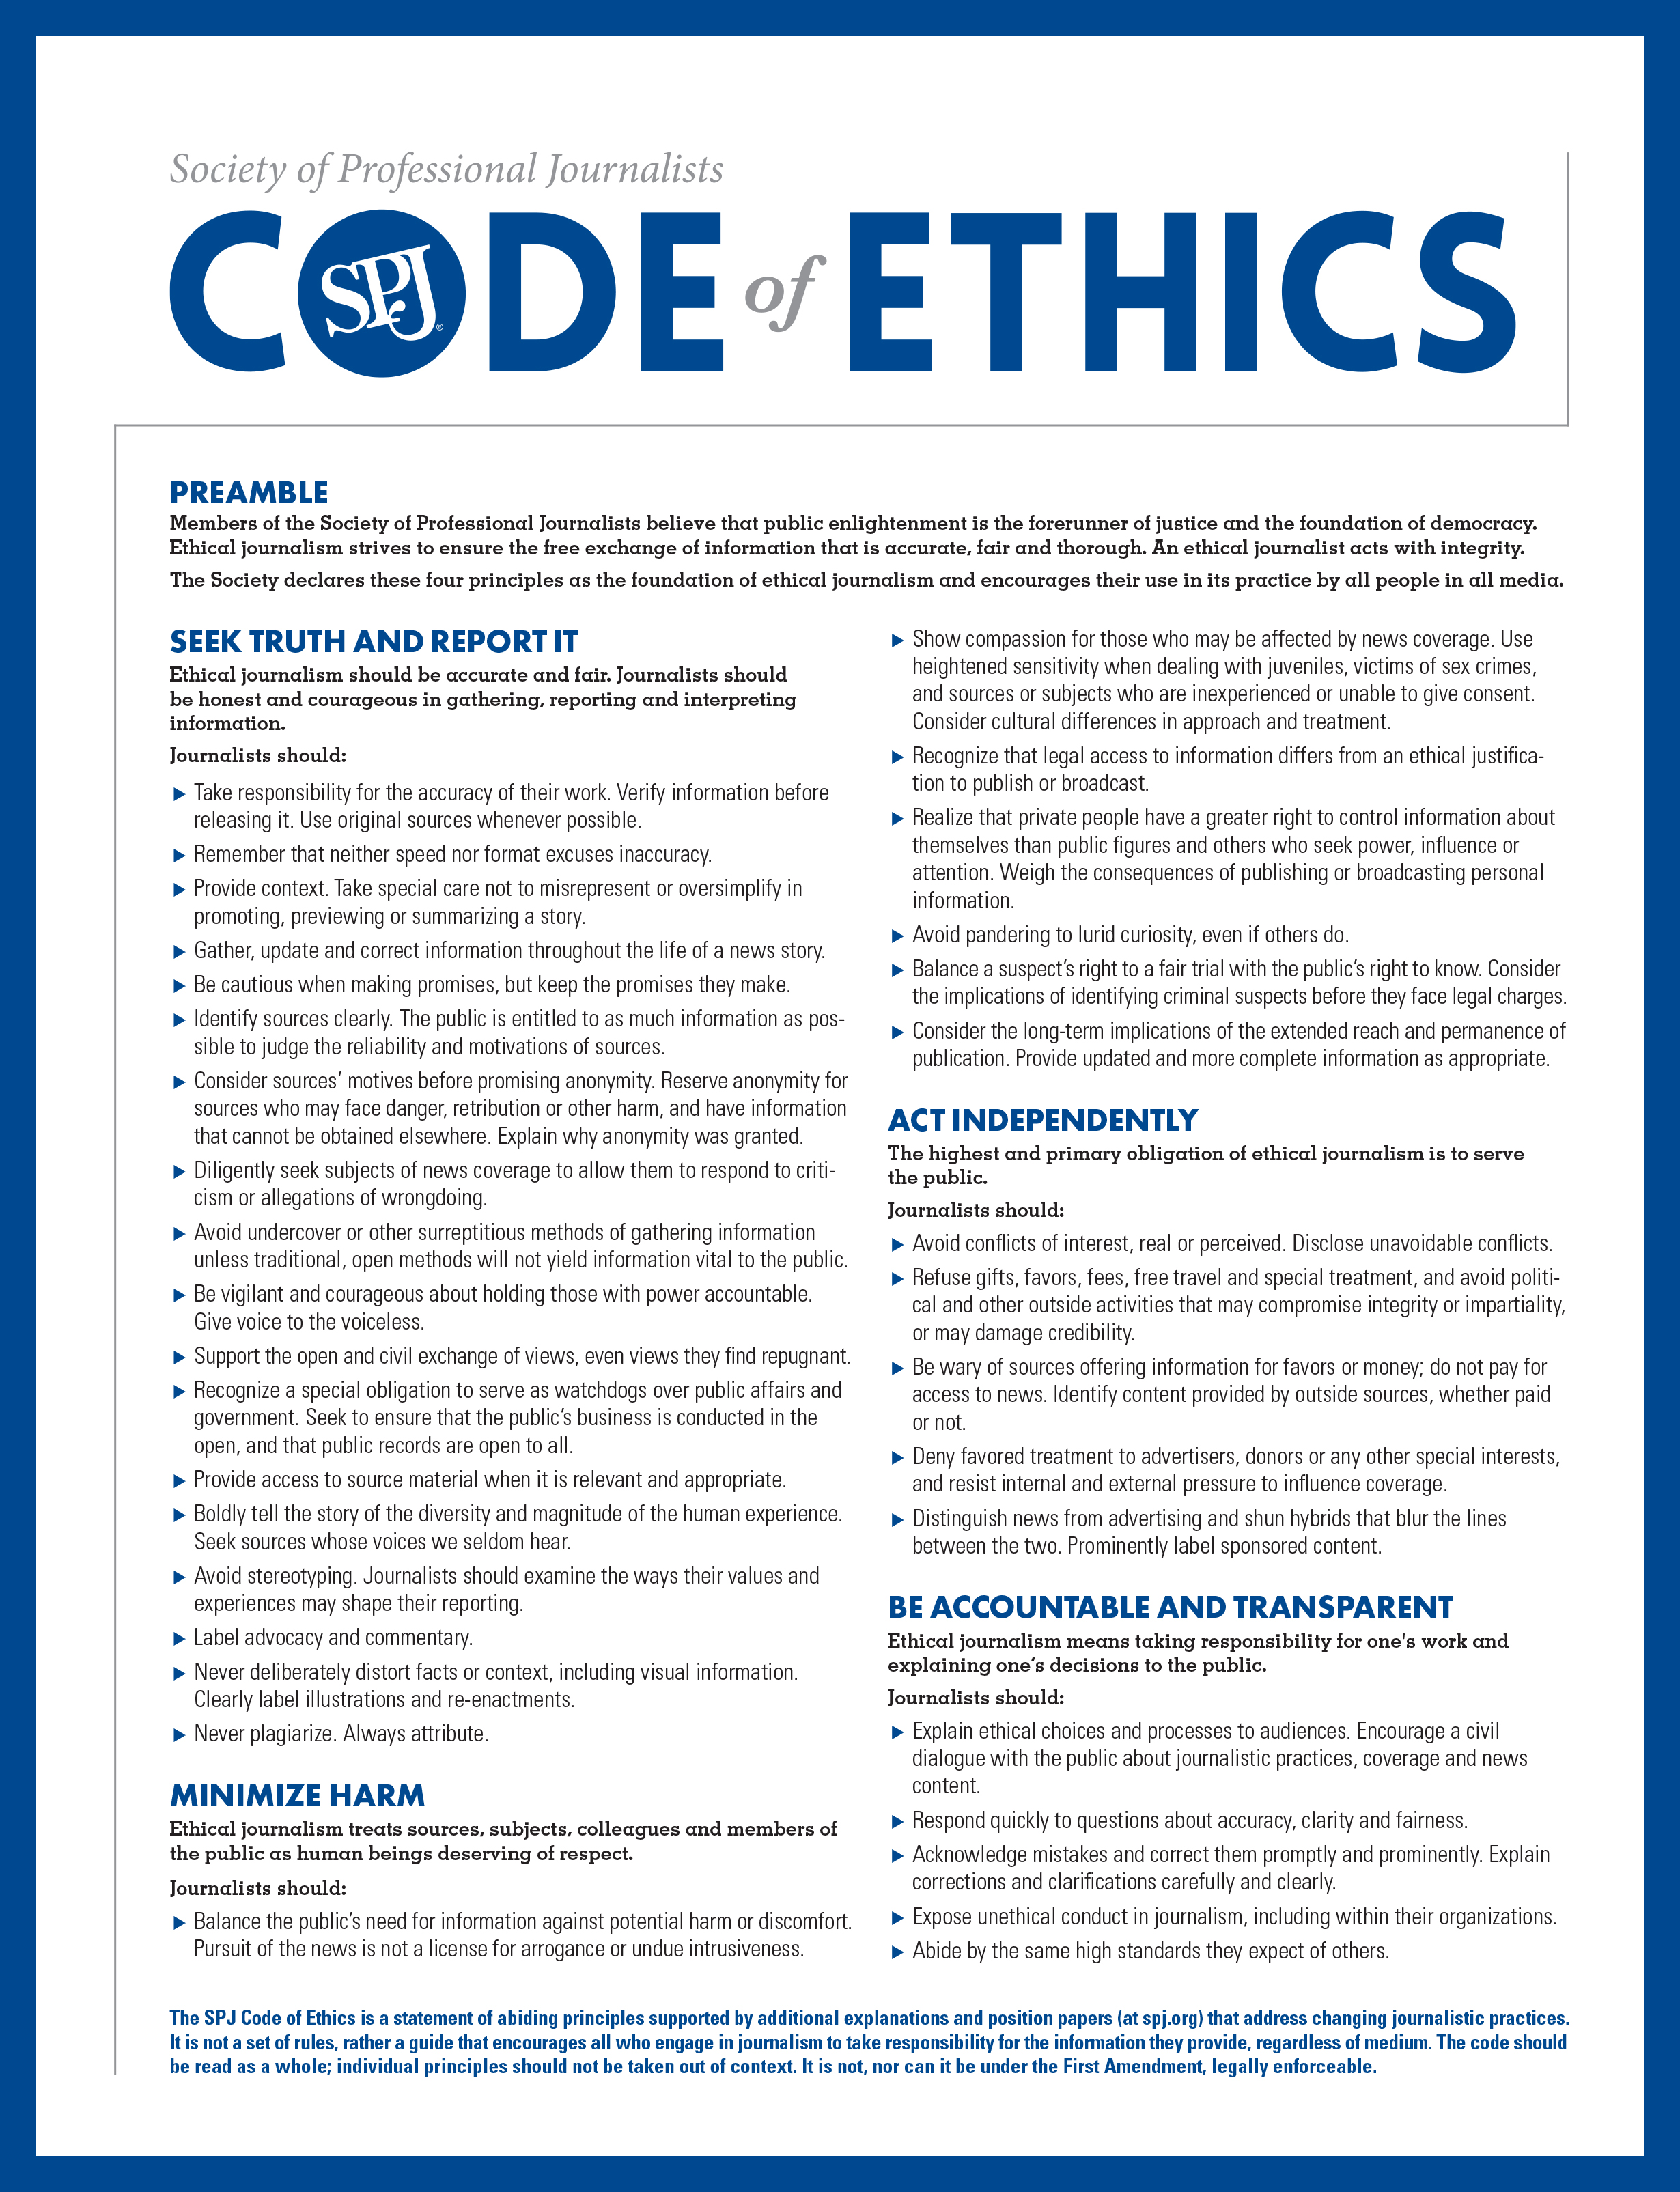 code of conduct essay Components of a code of conduct essay 1286 words | 6 pages introduction a code of conduct applies to all staff including employees, vendors and board members and.